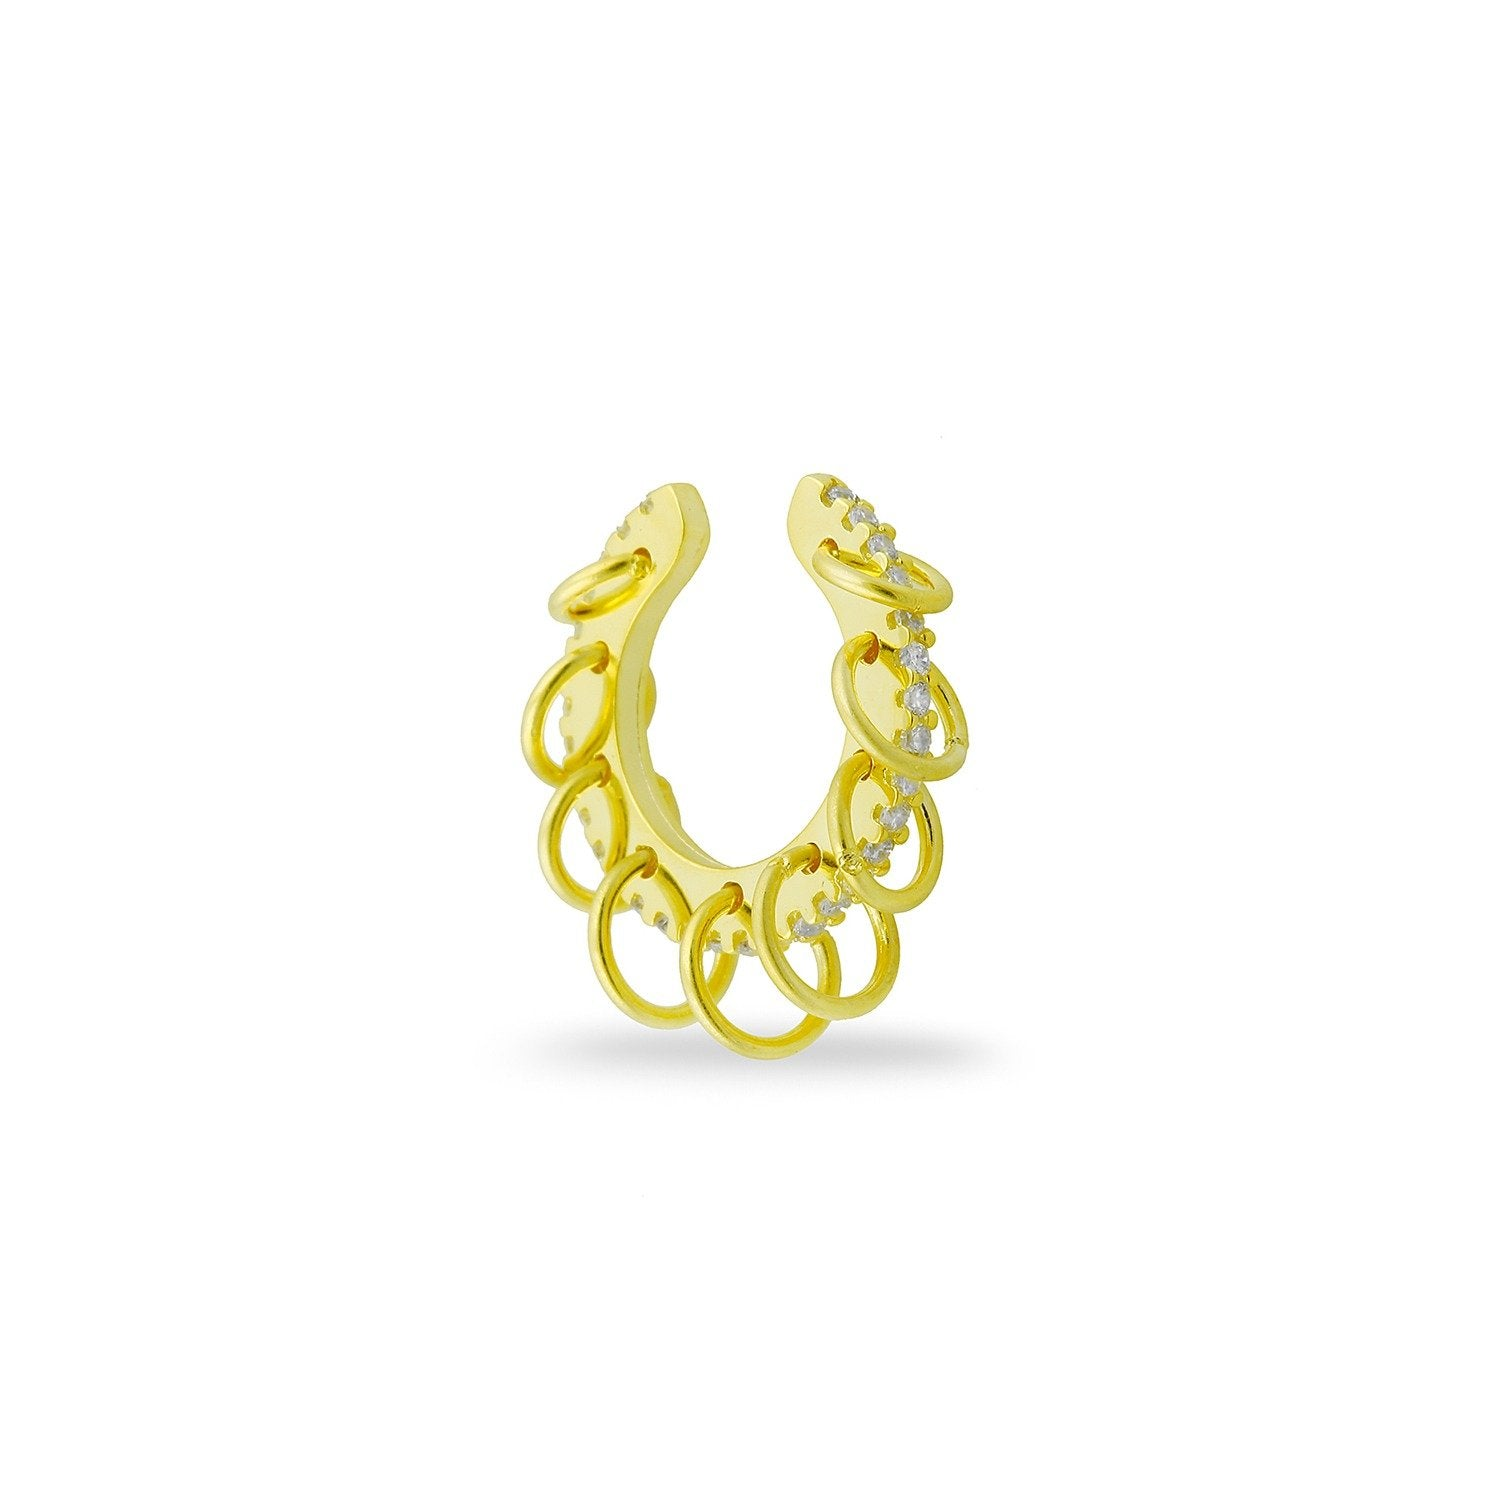 Crystal and Gold Loop Ear Cuff and Earrings - PREORDER